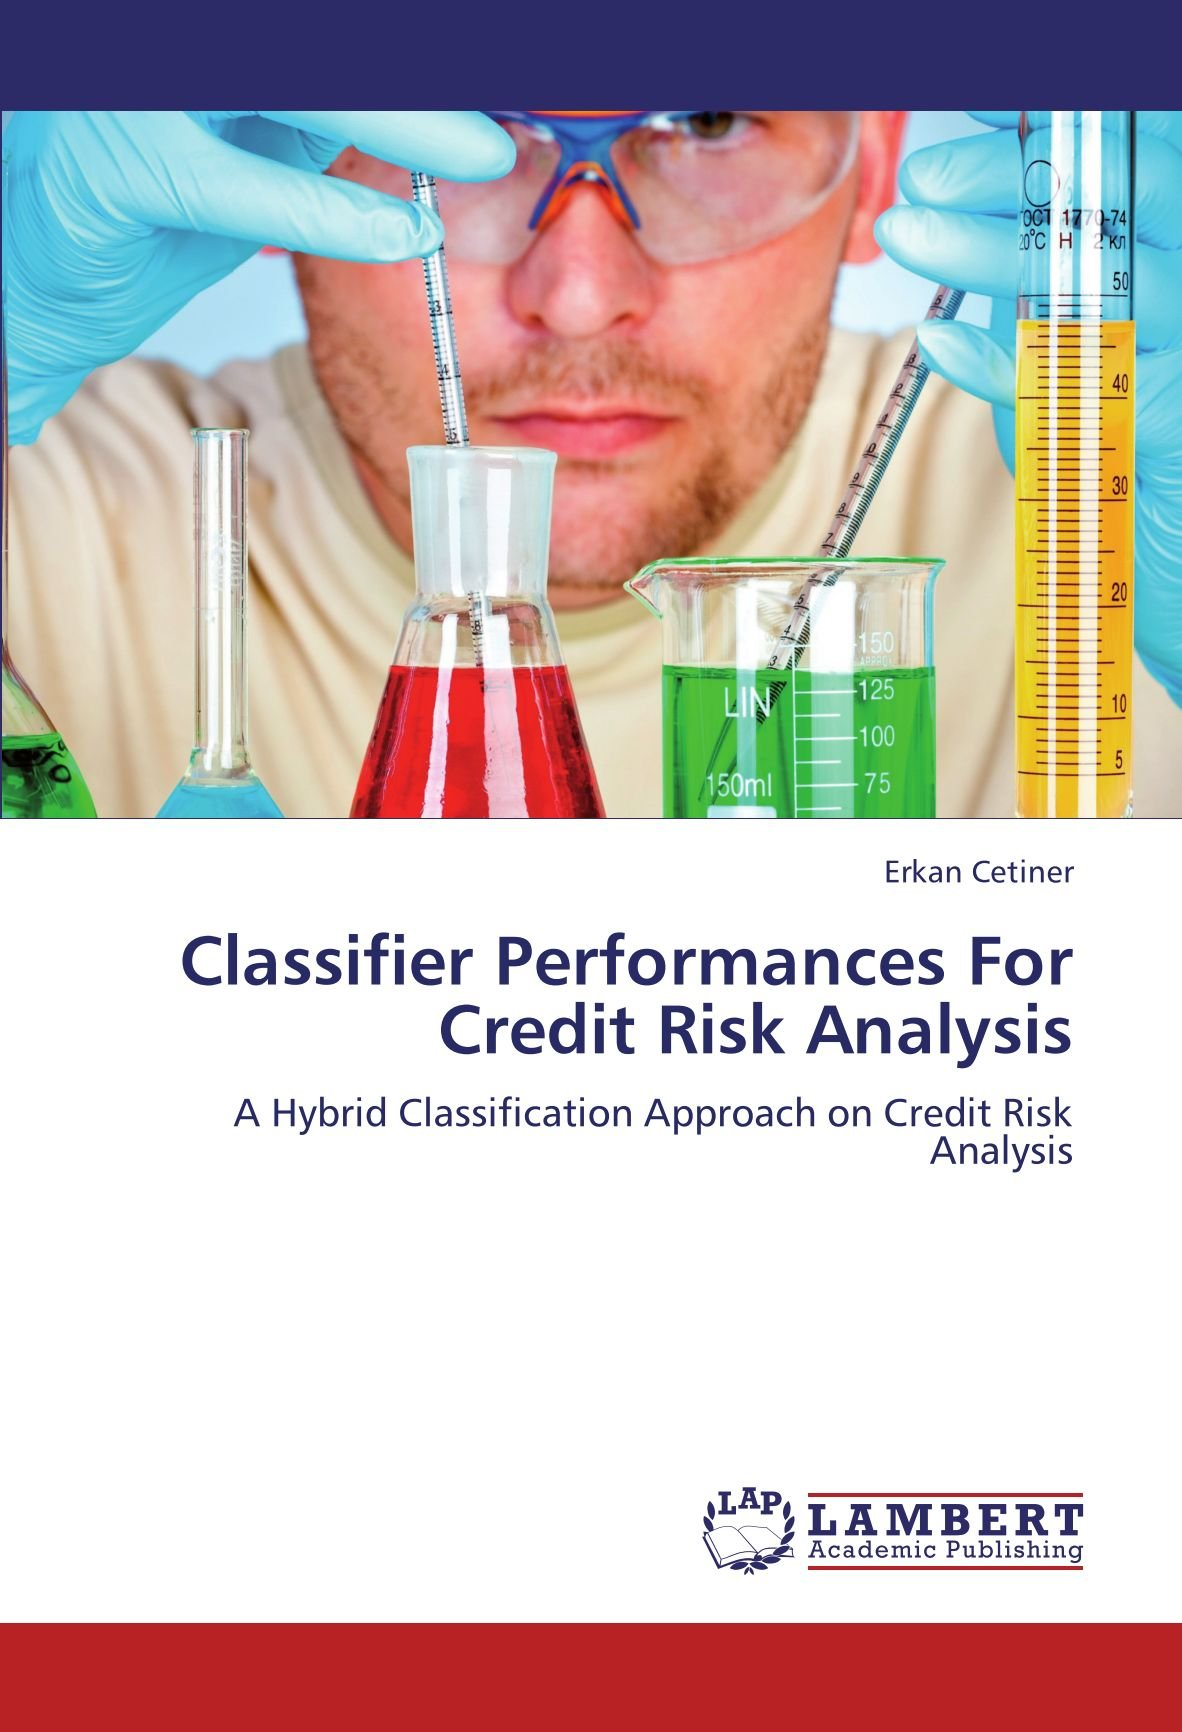 Download Classifier Performances For Credit Risk Analysis: A Hybrid Classification Approach on Credit Risk Analysis PDF